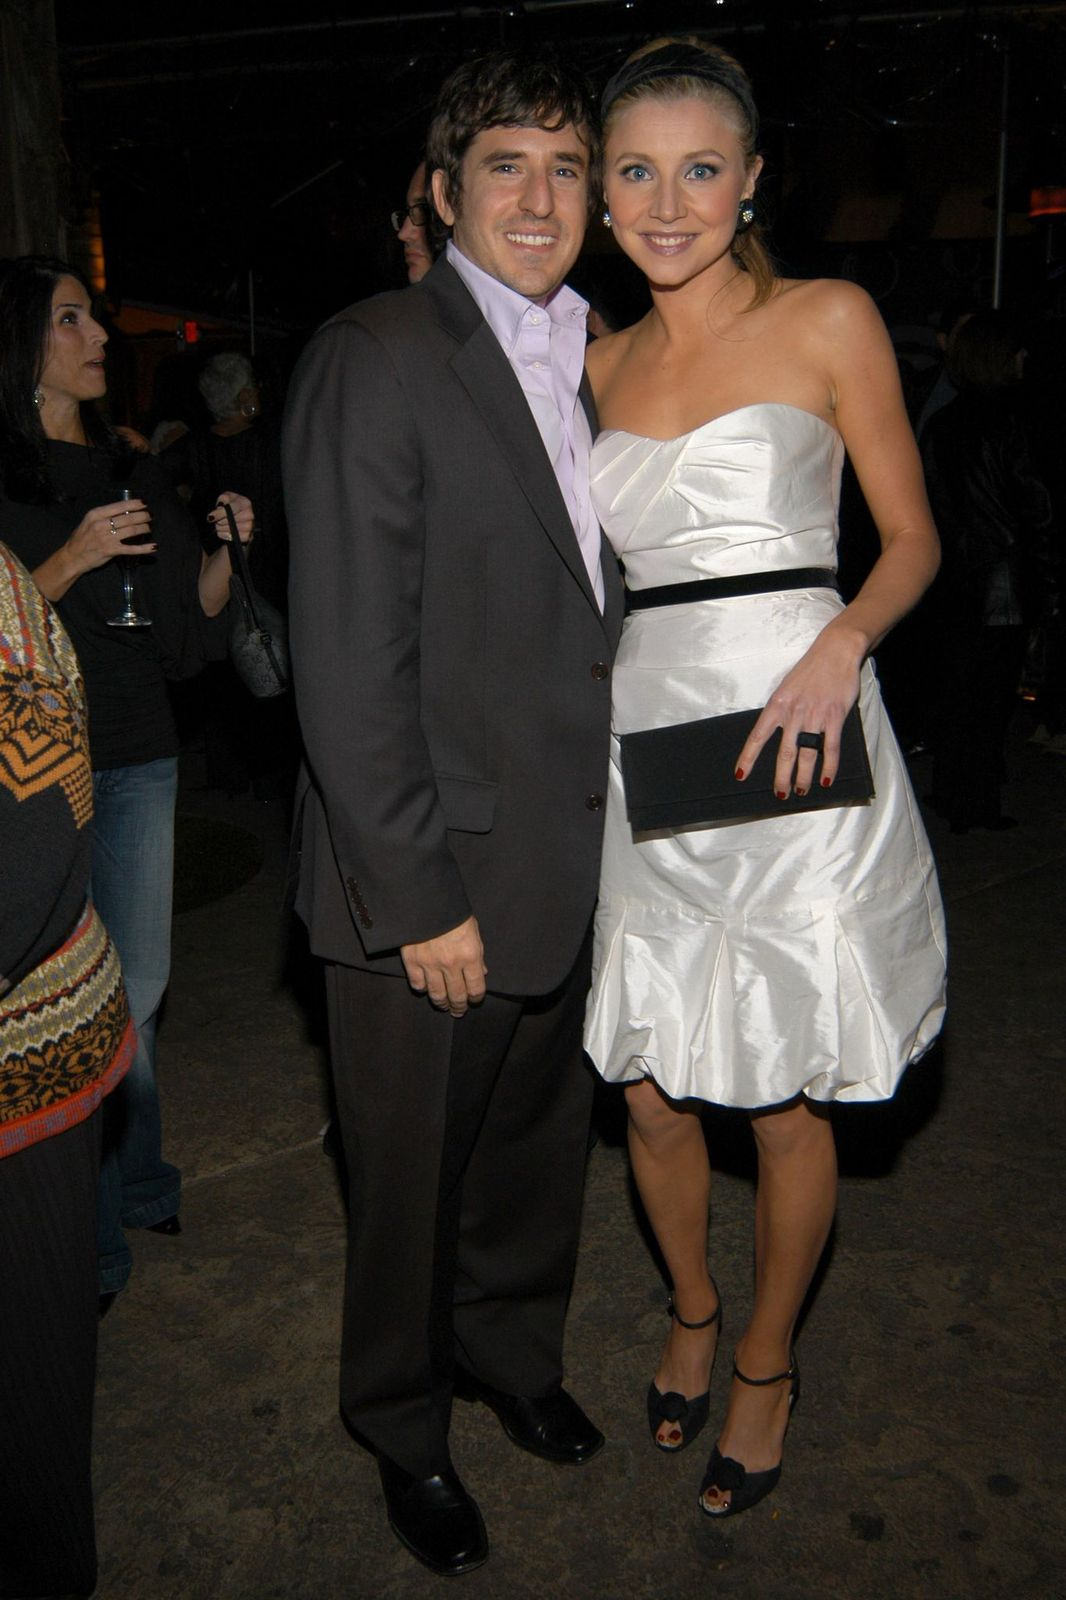 """Jamie Afifi and Sarah Chalke at""""Scrubs"""" Stars to celebrate the show's 100th episodeon January 14, 2006, in Los Angeles, California 